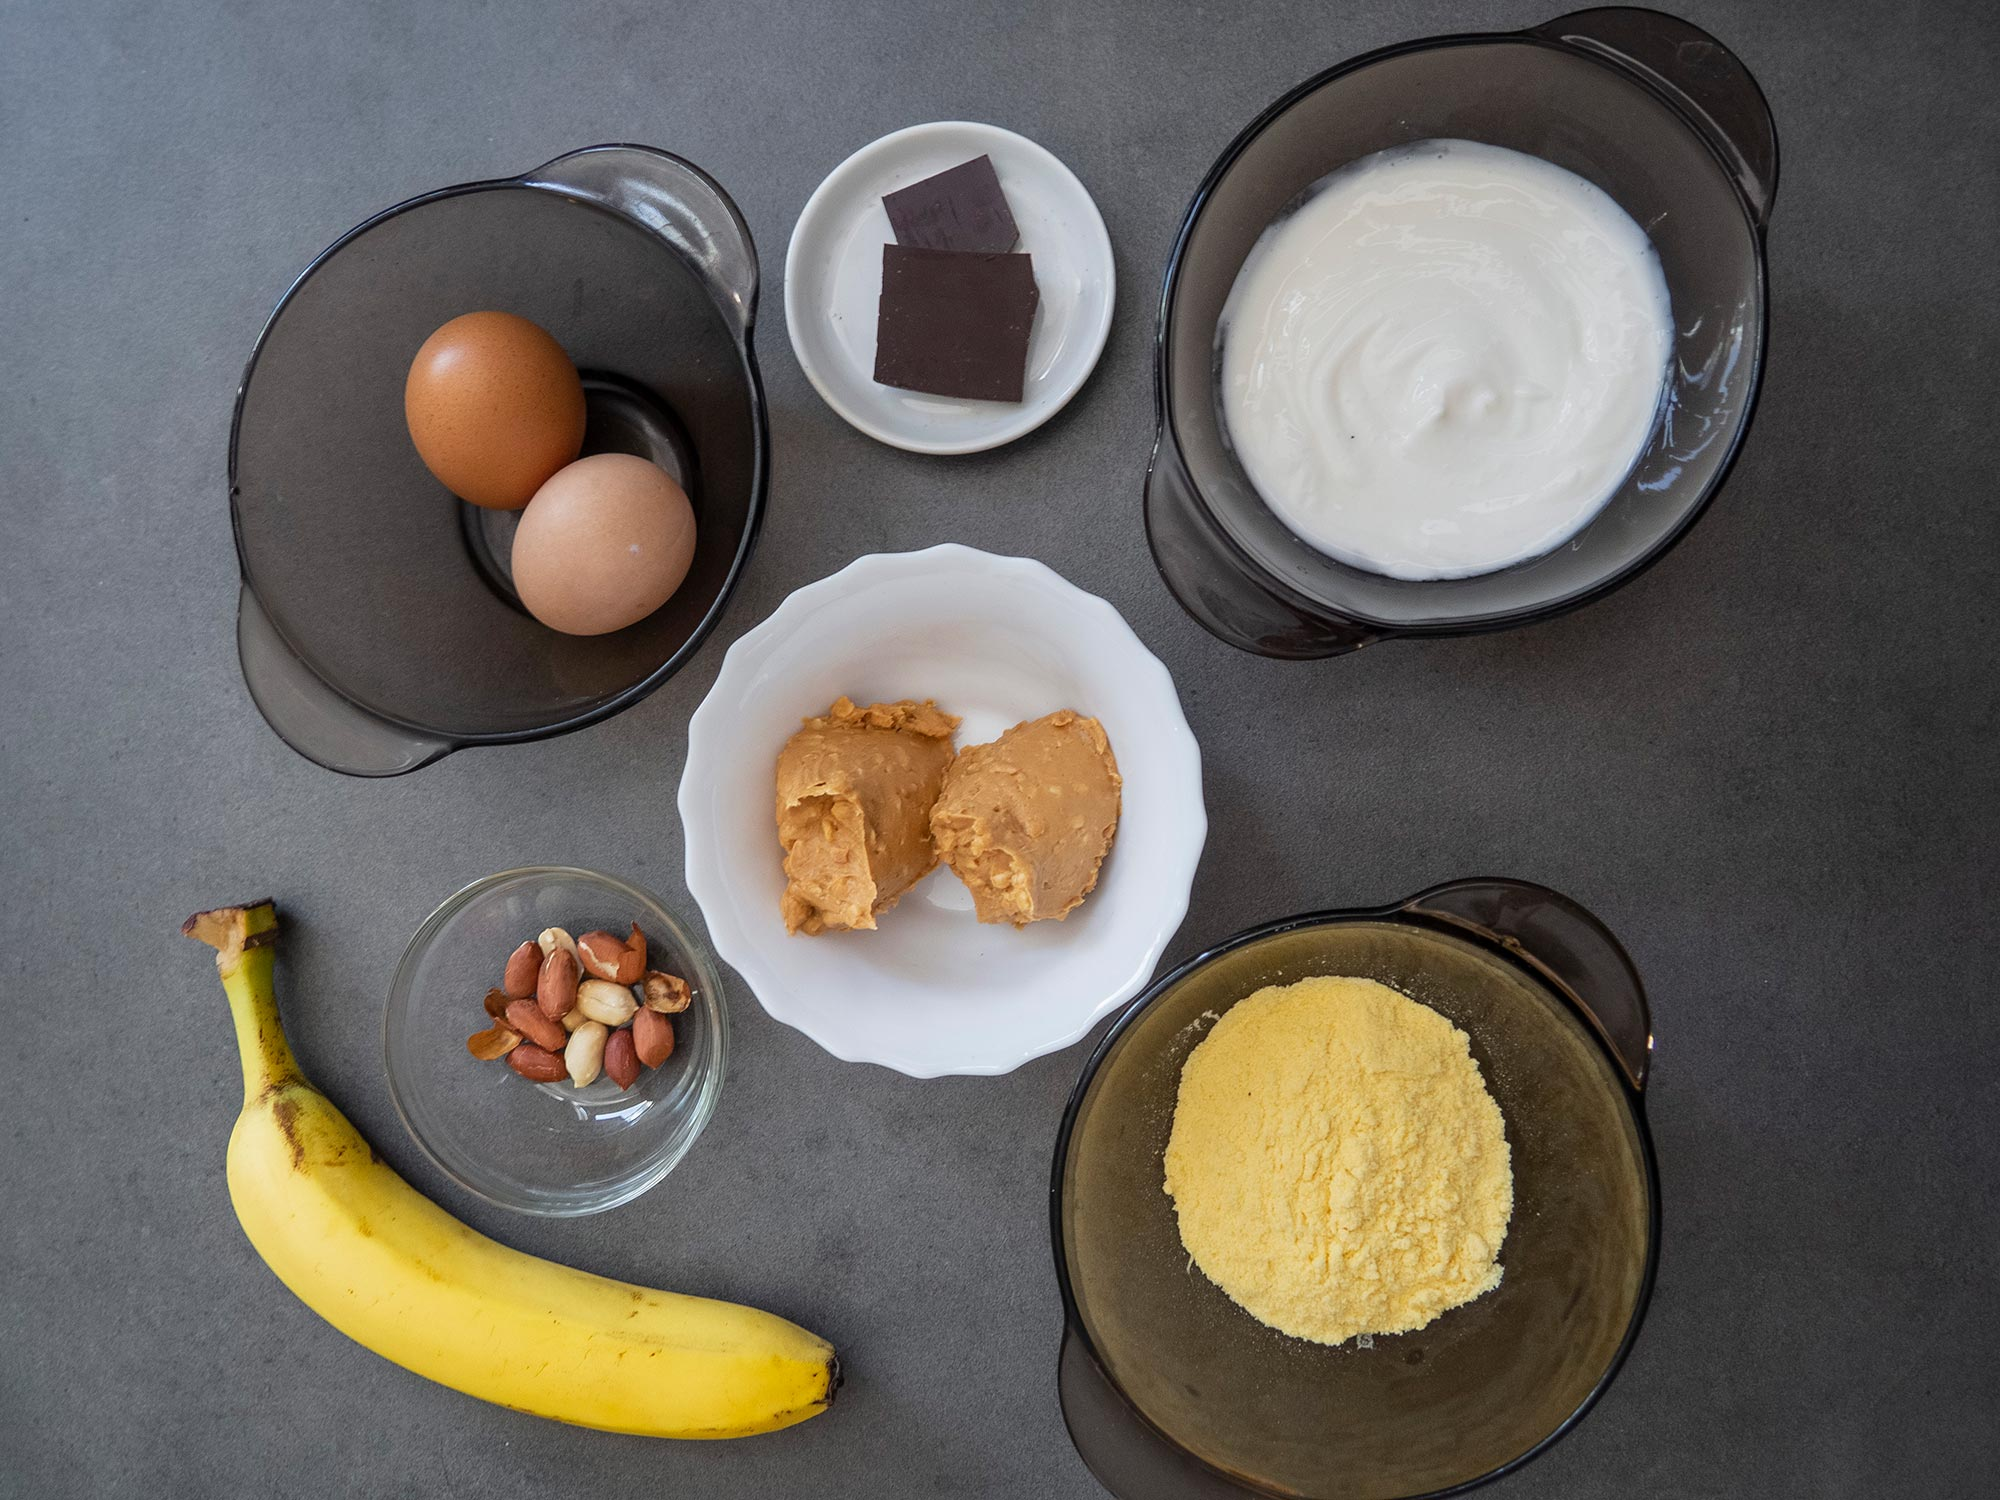 Ingredients for Snickers Pancakes